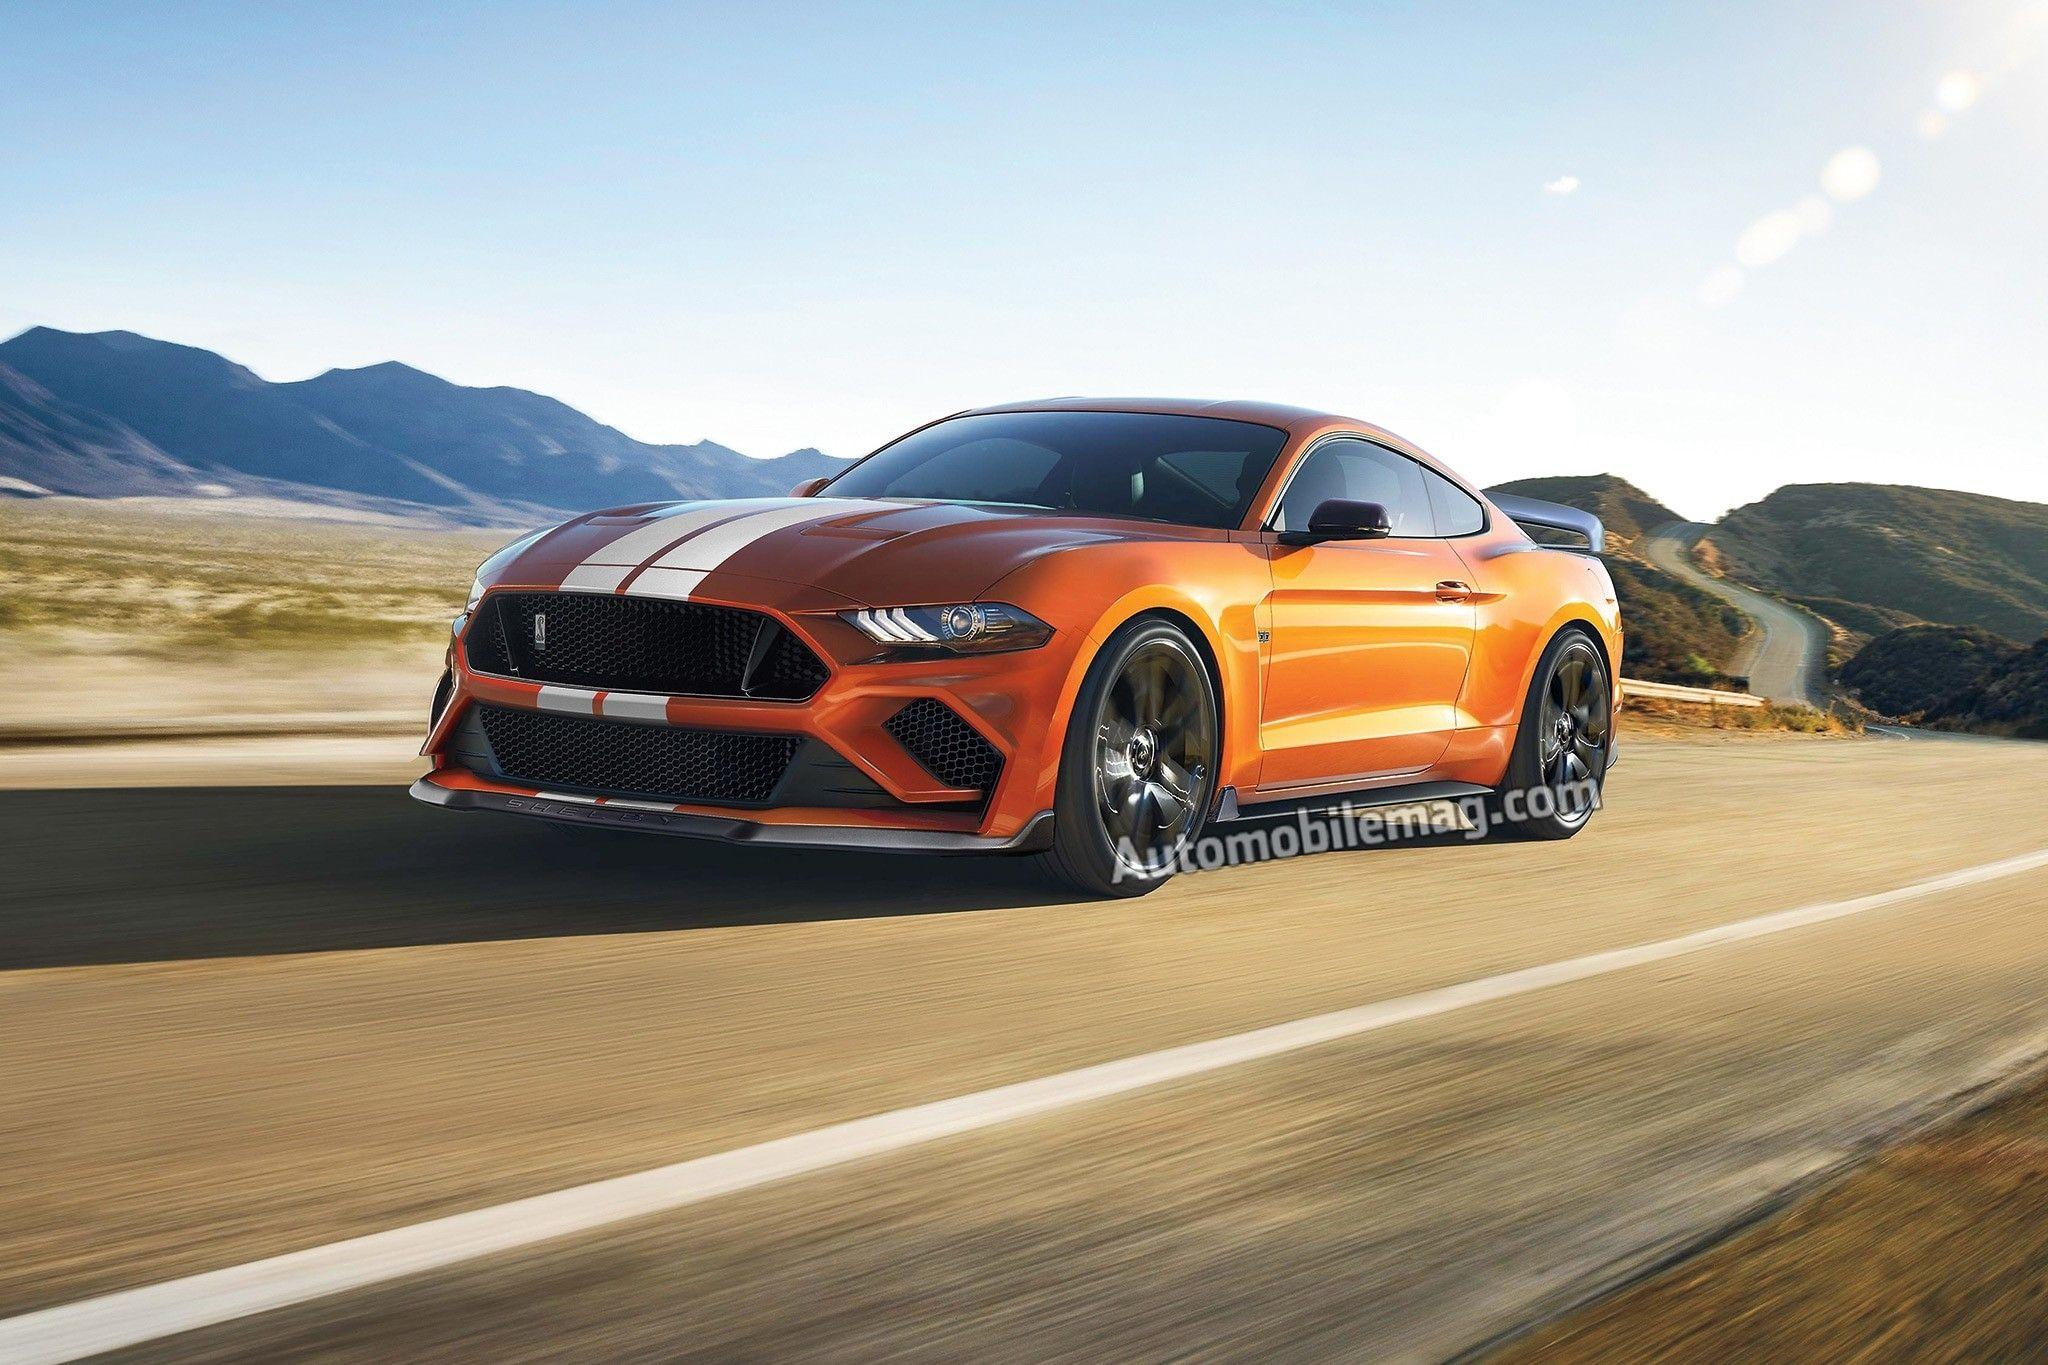 2019 ford mustang gt500 review specs and release dateredesign price and reviewconcept redesign and review release date price and reviewpicture